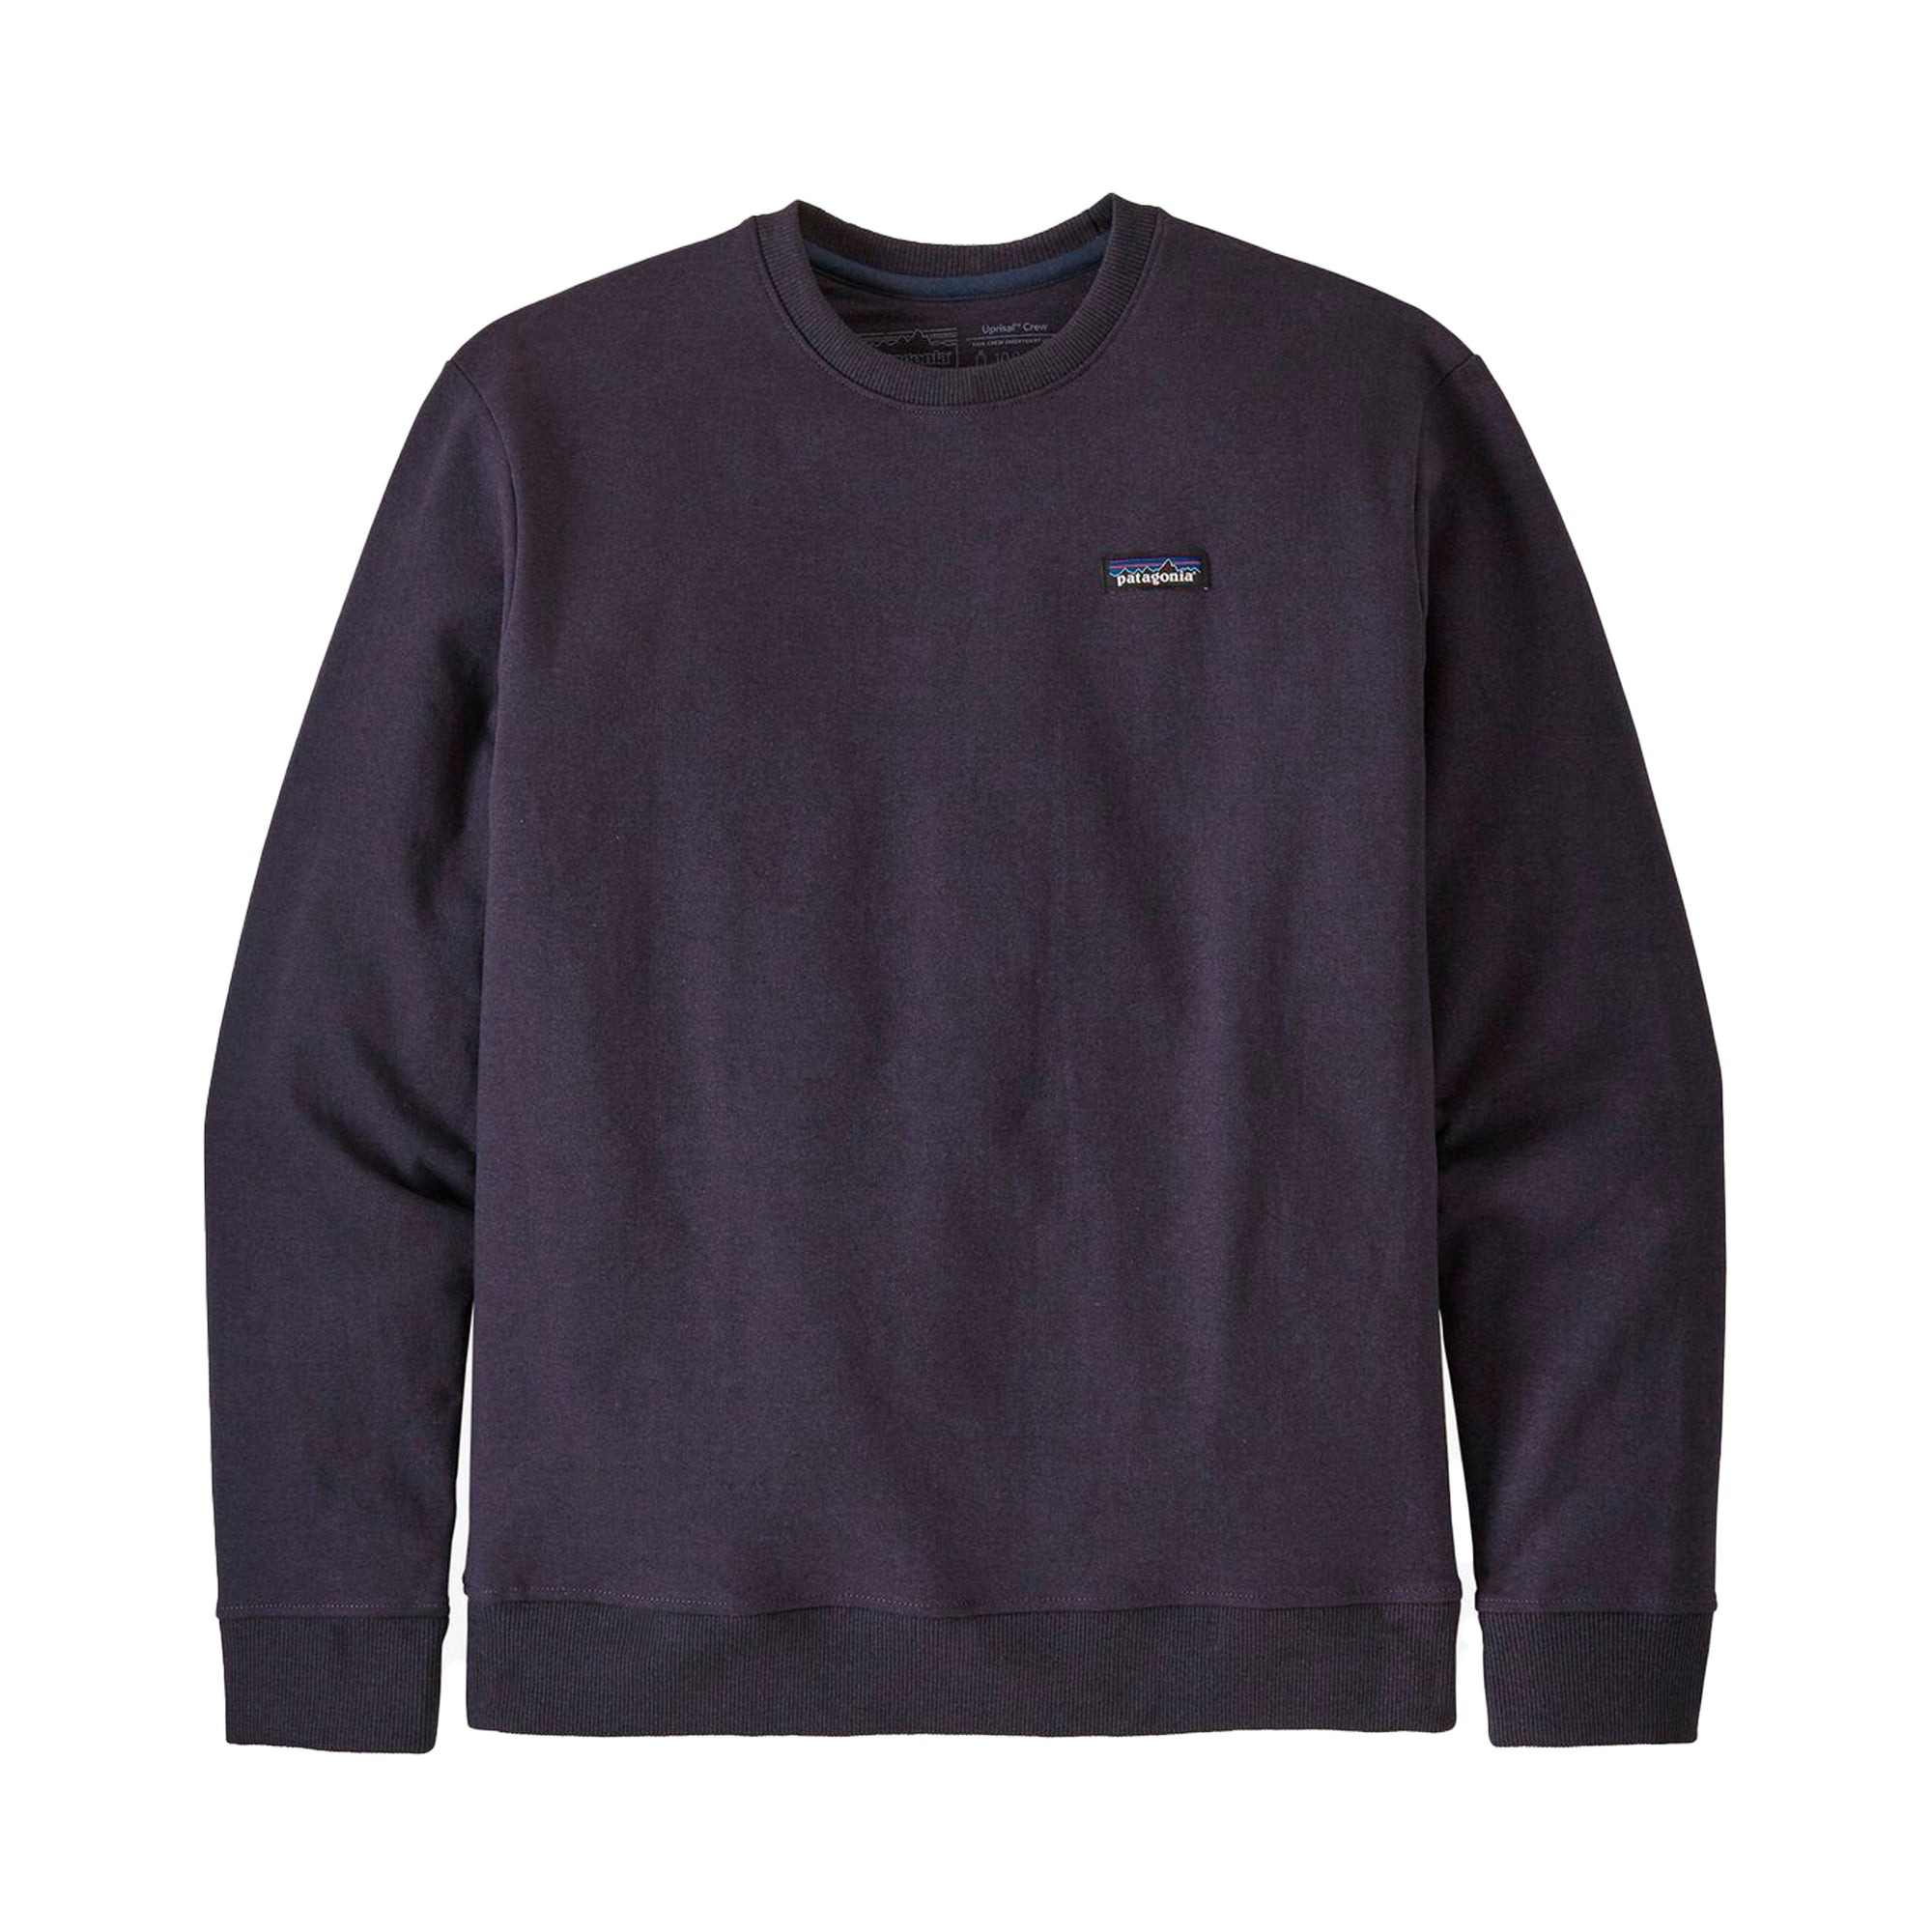 Patagonia P-6 Label Uprisal Crew Sweatshirt: Piton Purple - The Union Project